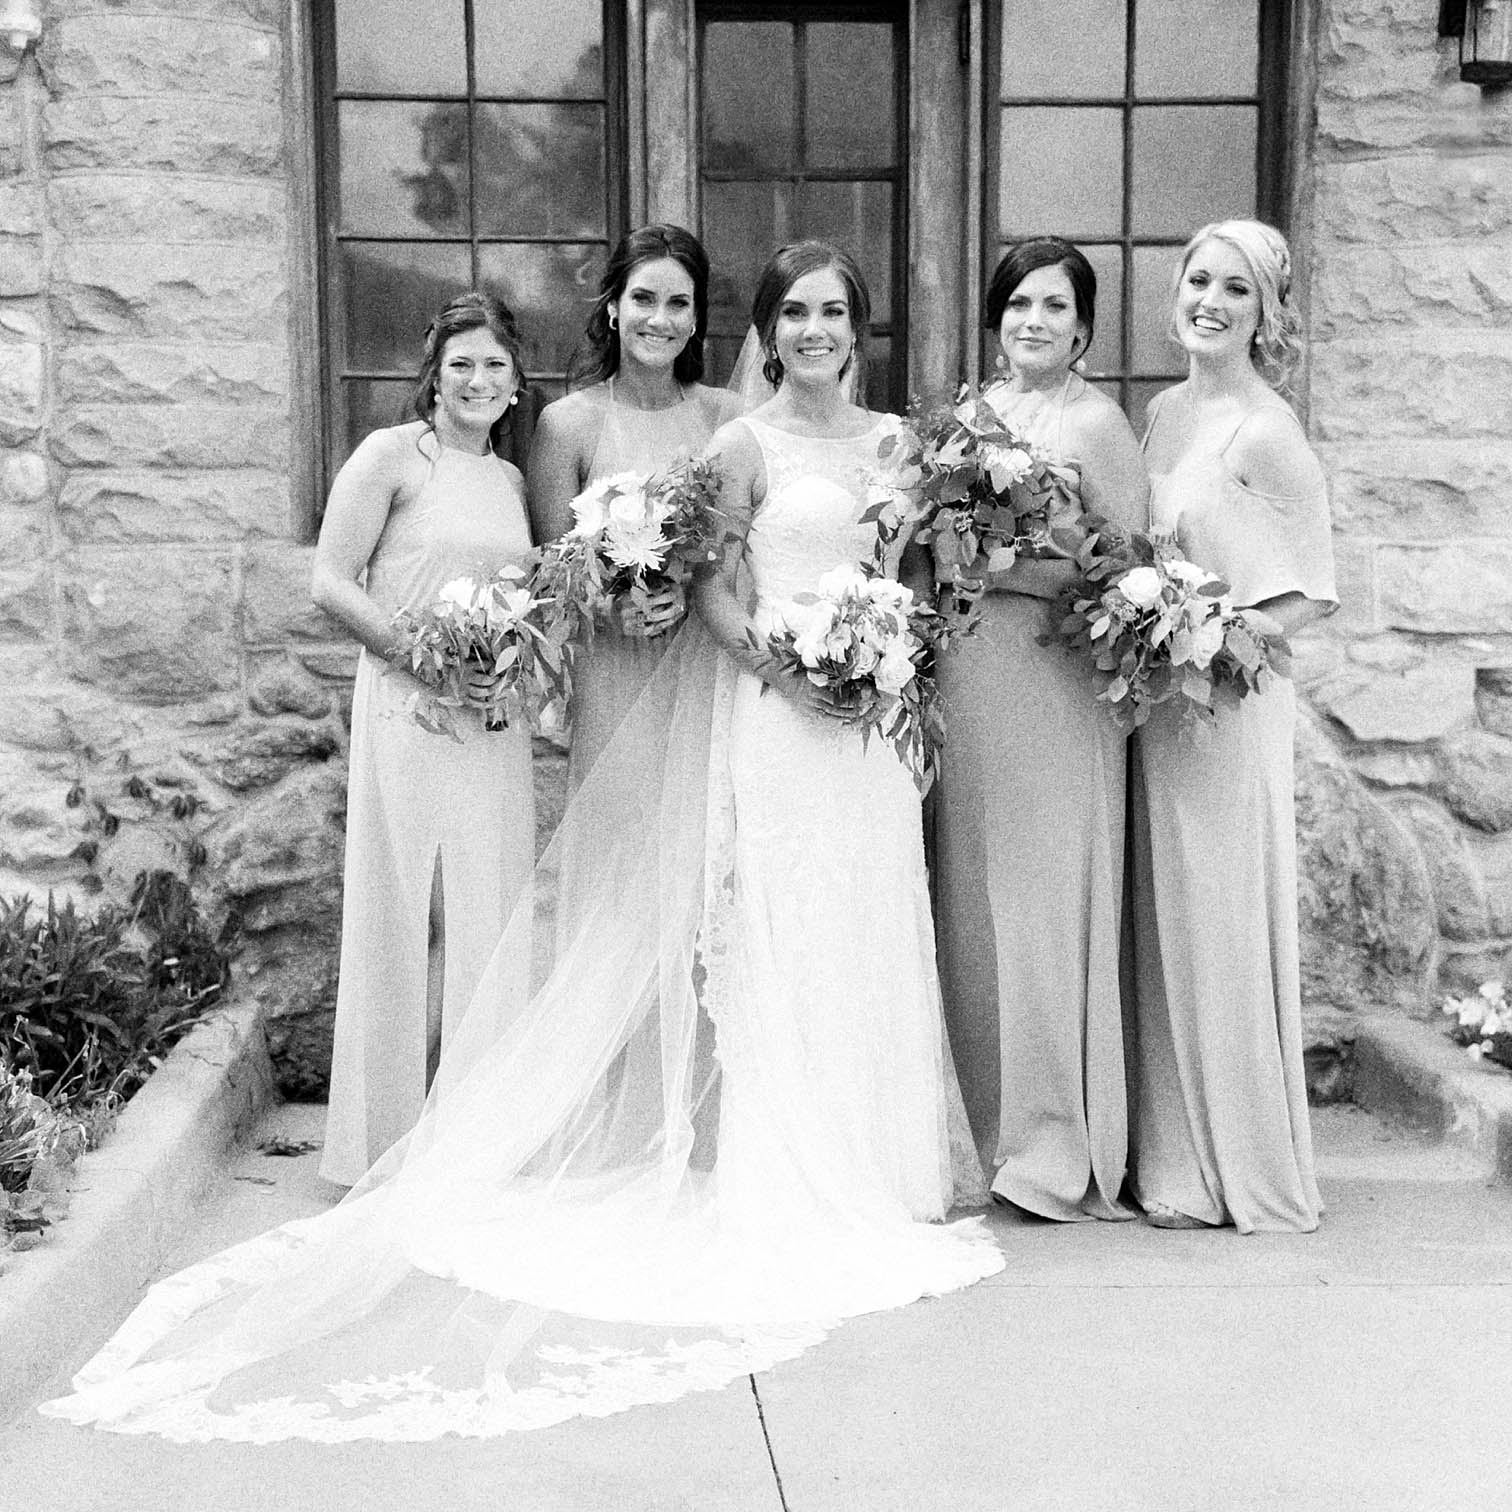 Wedding Party, Bridesmaids, Rolleiflex Camera, First Kiss, Mountain Weddings, Danielle DeFiore Photographer, Bride and Groom Portraits, Colorado Wedding Photographers, Castle Wedding, Classic Black tie Wedding, Film Photographer, Colorado Weddings, Black and White Photography